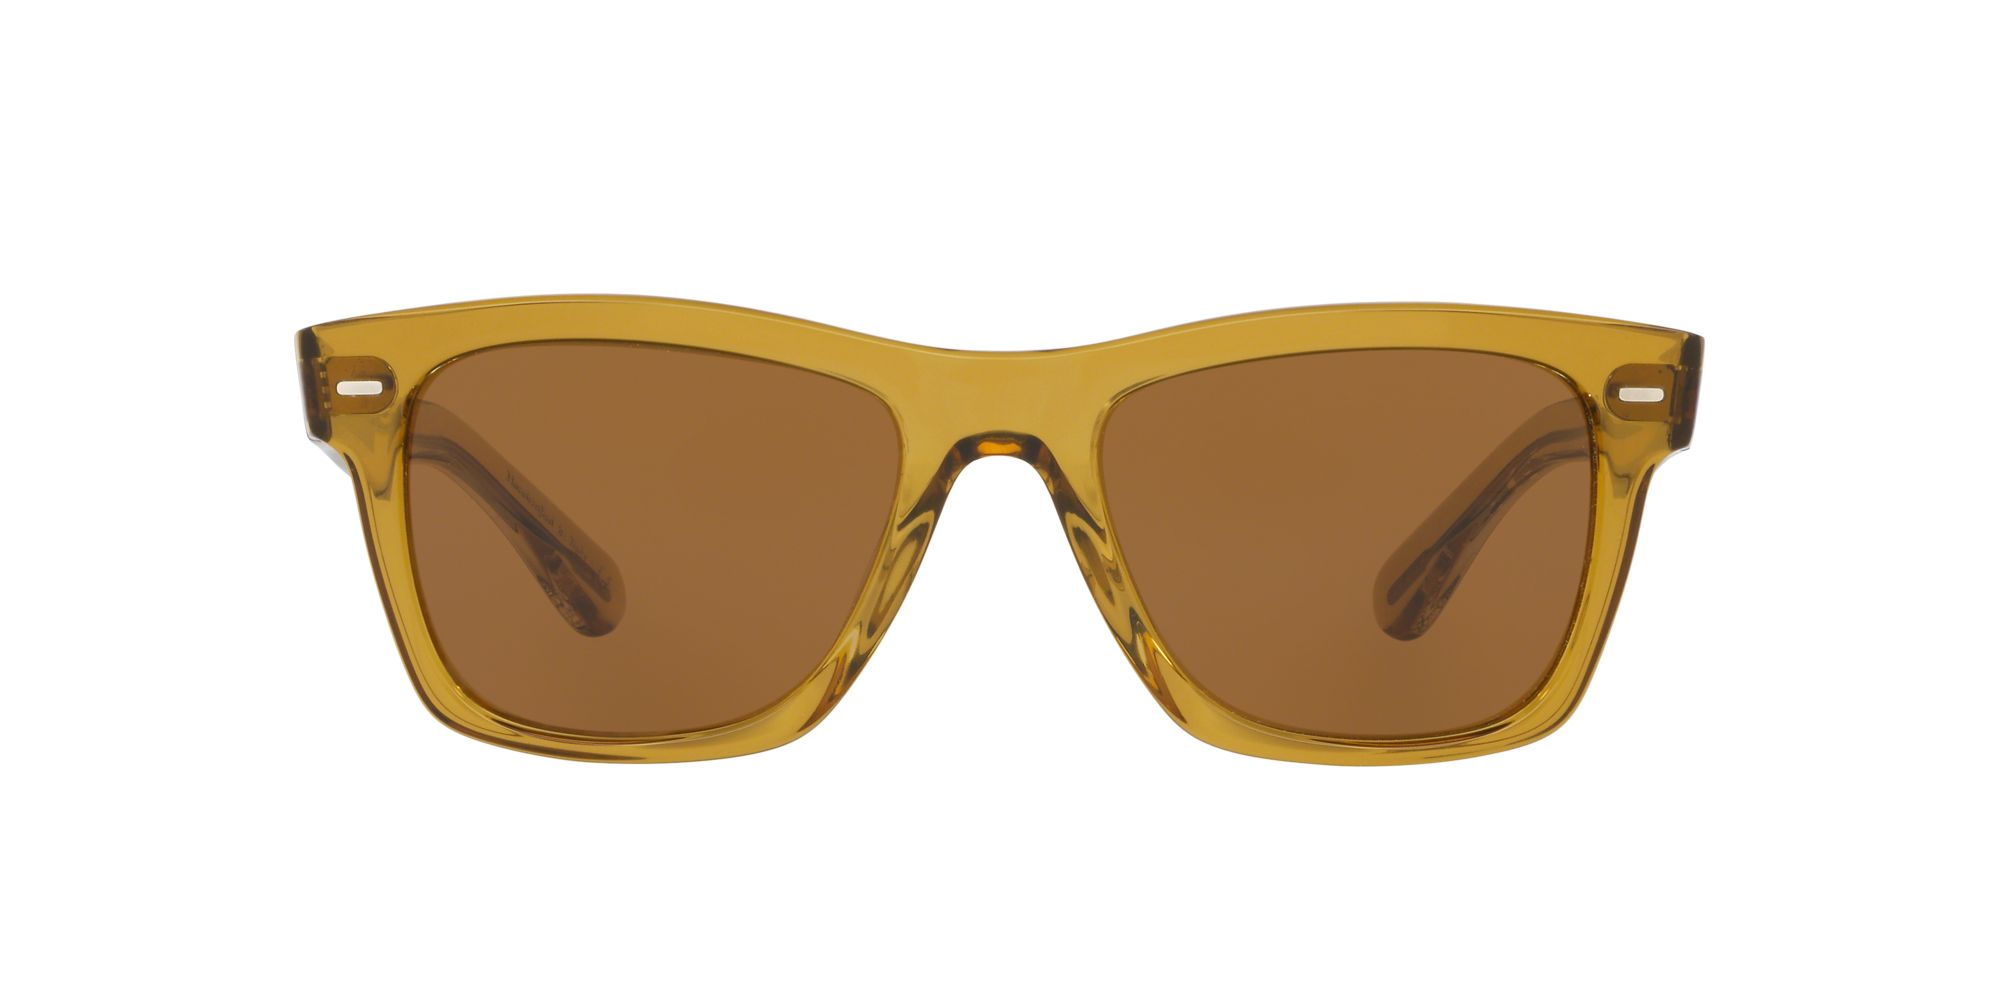 Oliver Peoples oliver sun dark honey